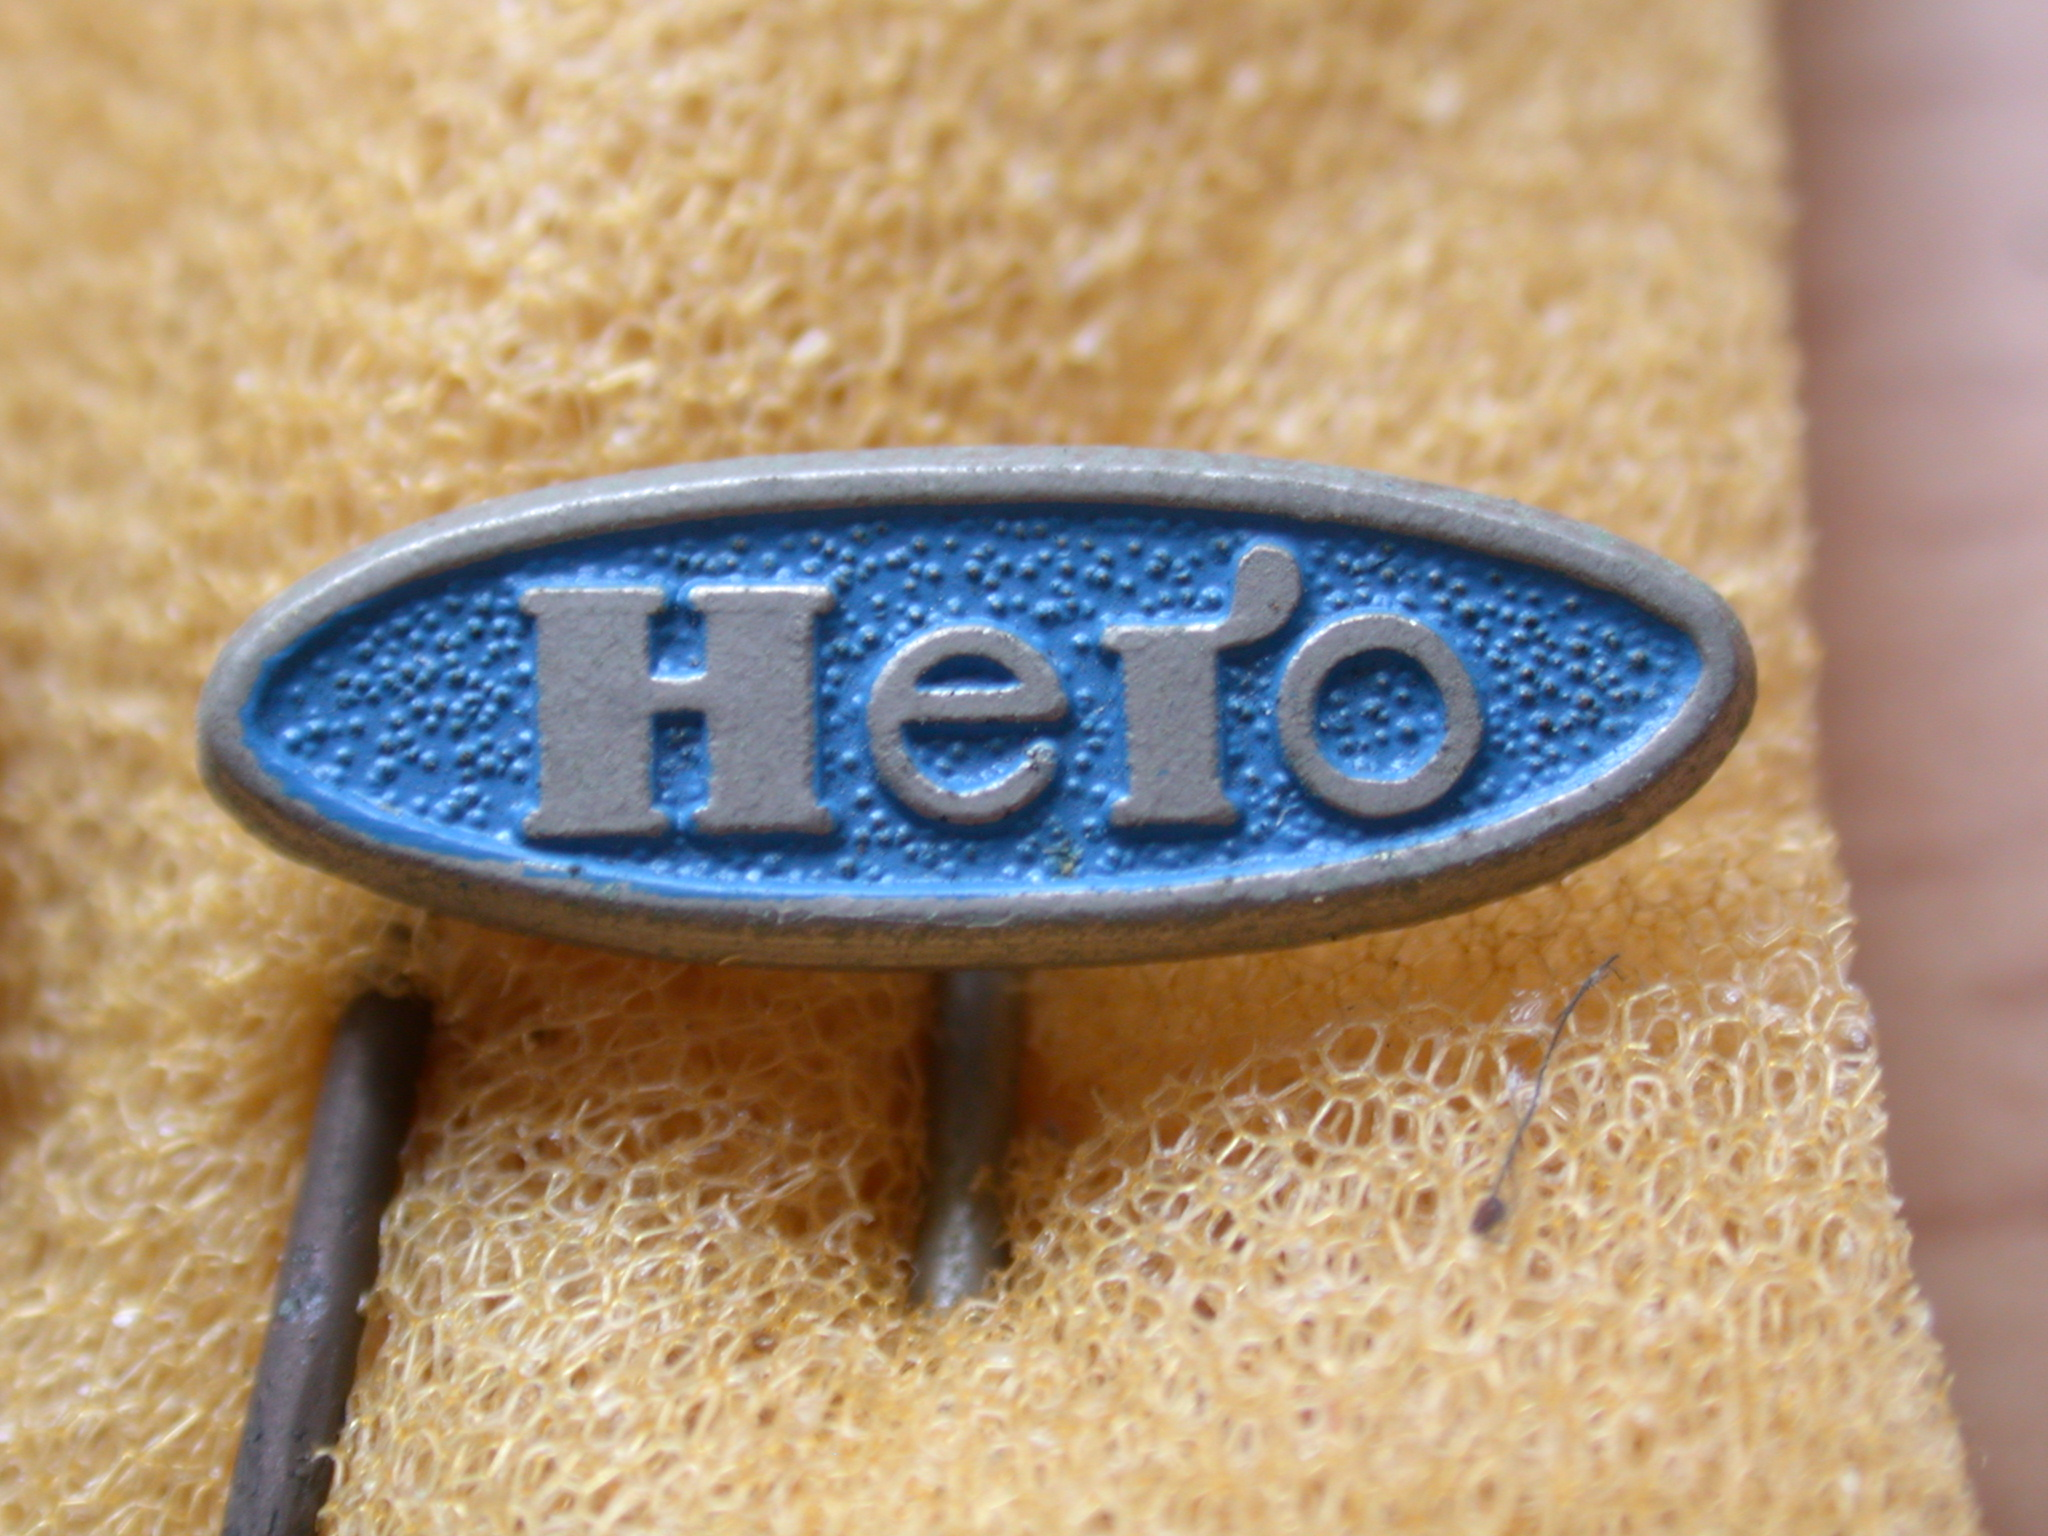 objects signs pin metal logo brand hero typo typography blue oval royalty-free